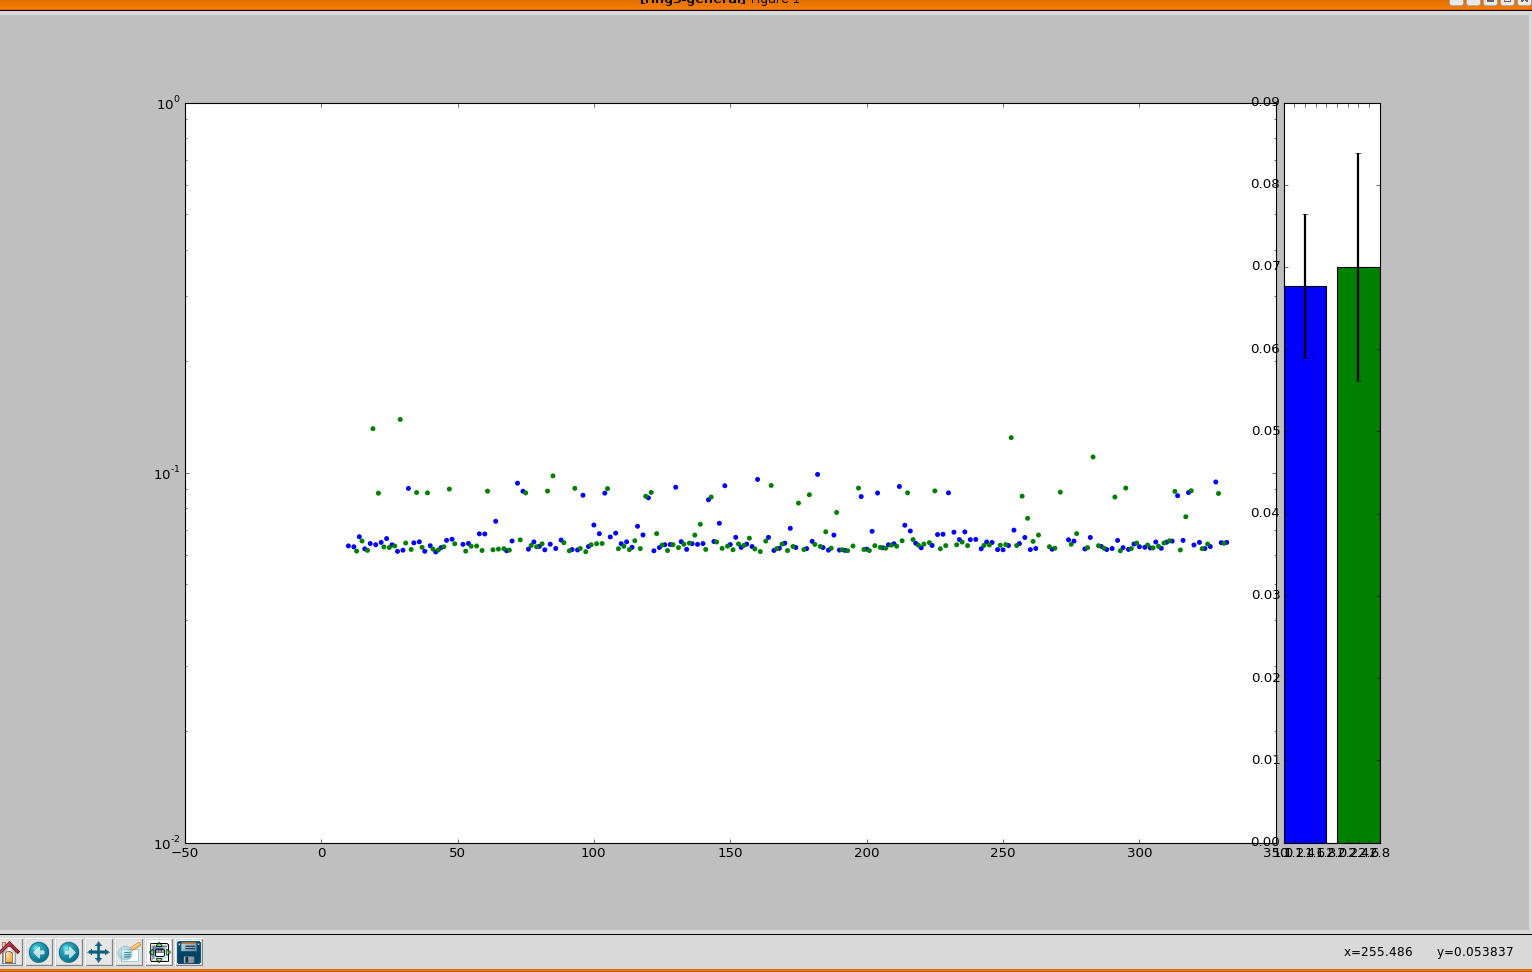 Latency scatter graph